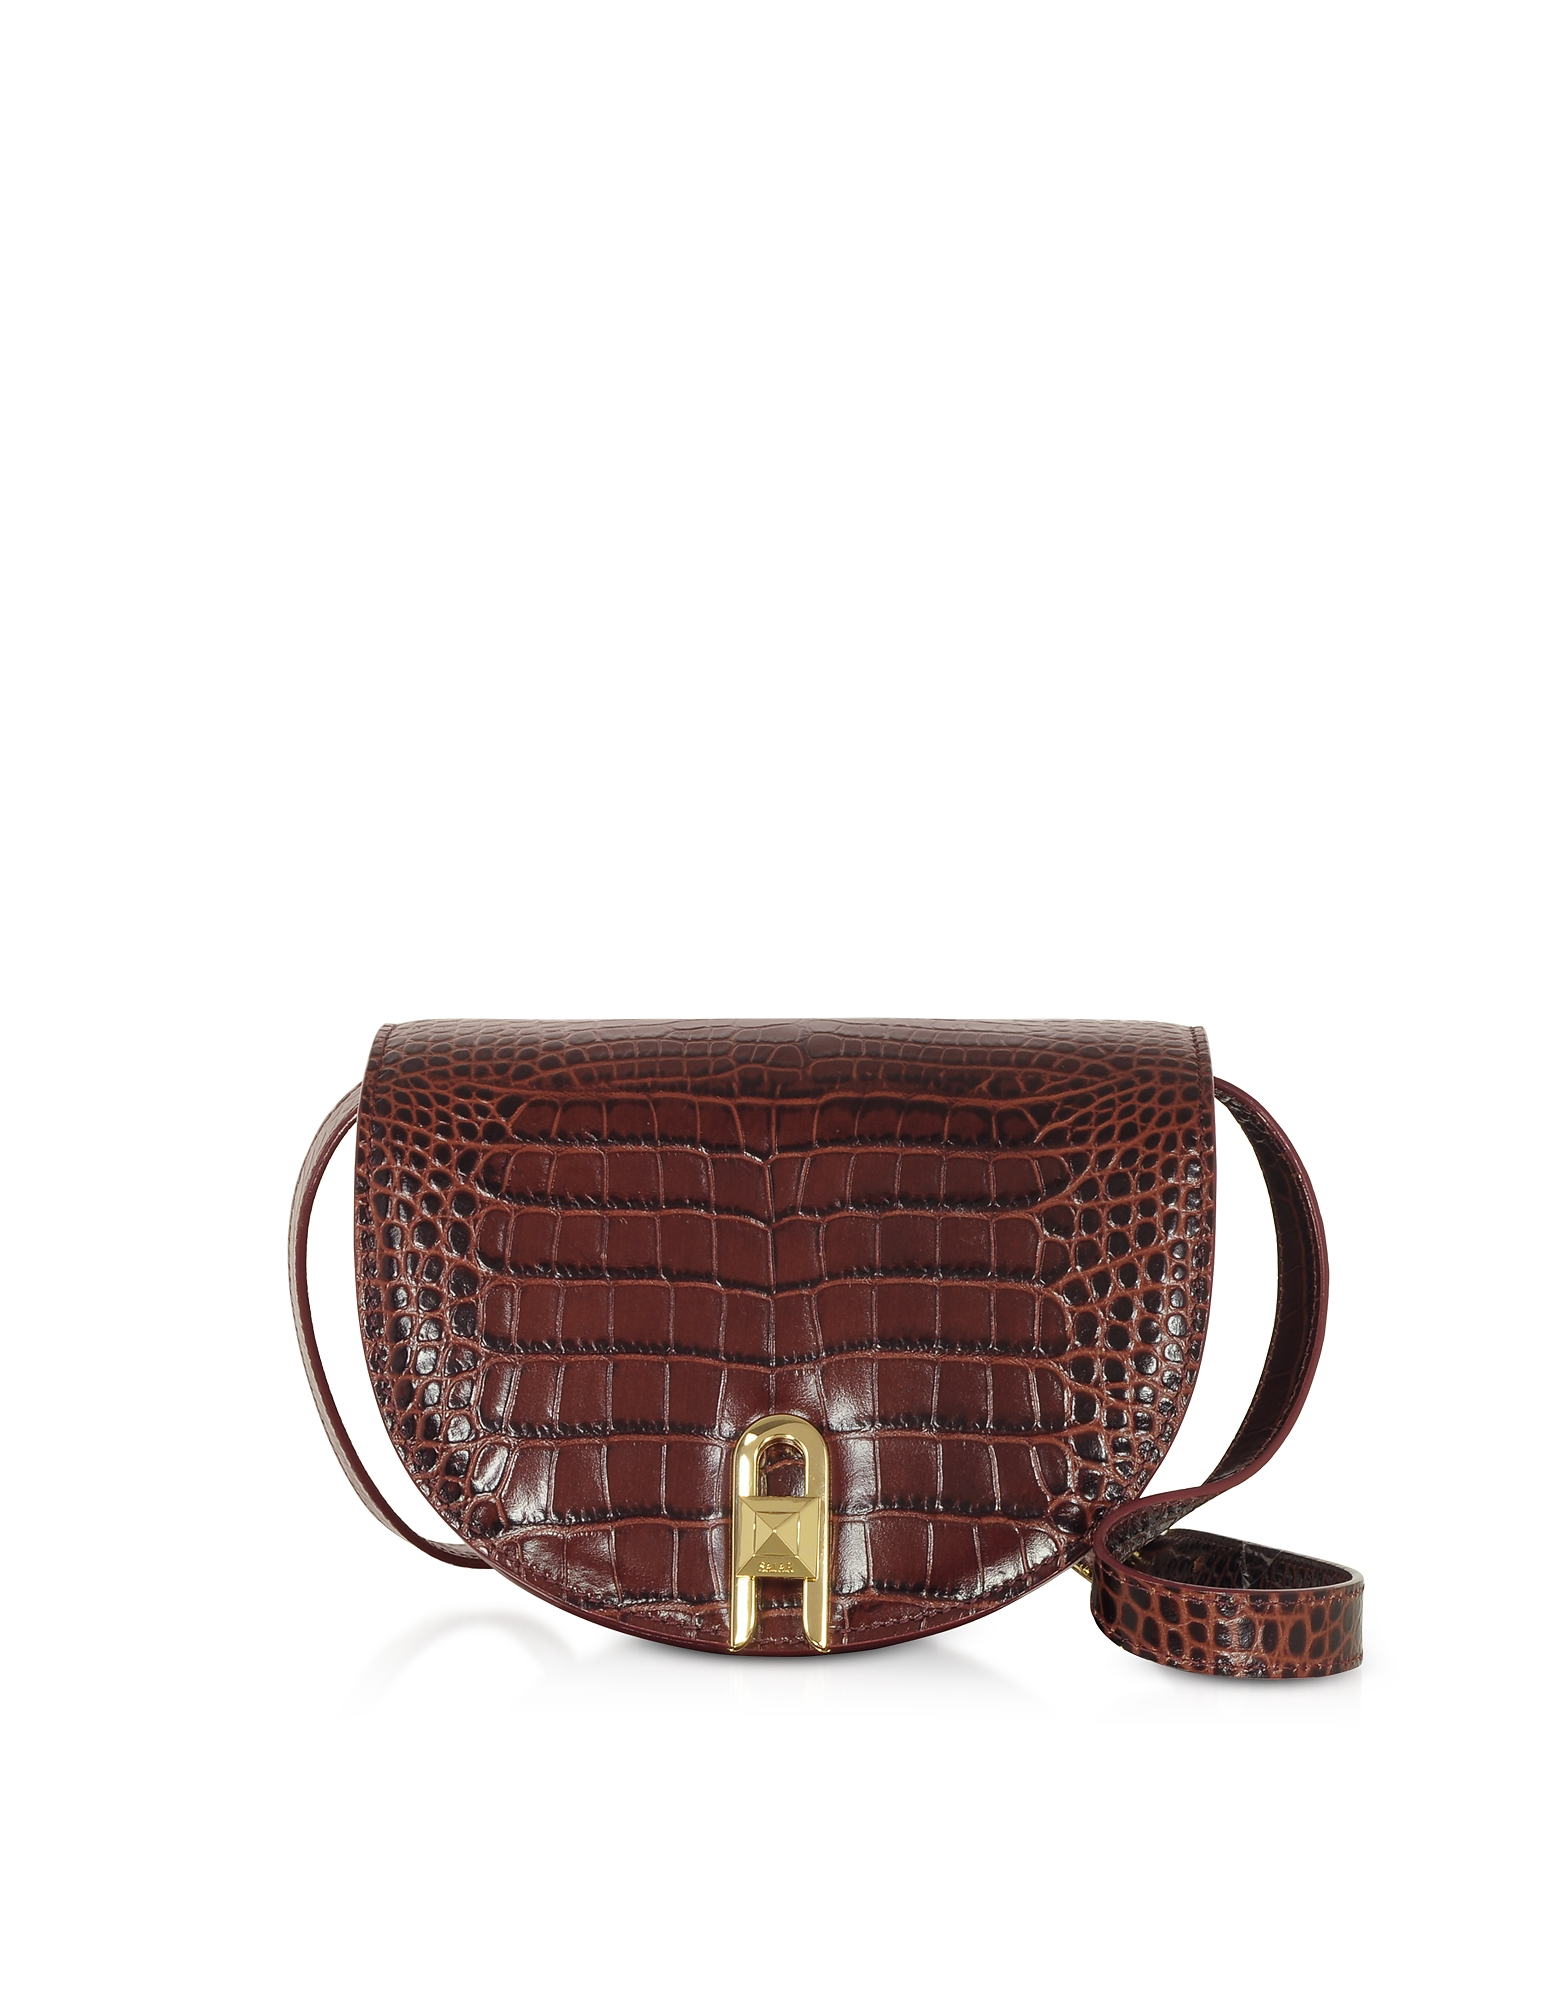 Salar Designer Handbags, Frida Croco Embossed Leather Crossbody Bag